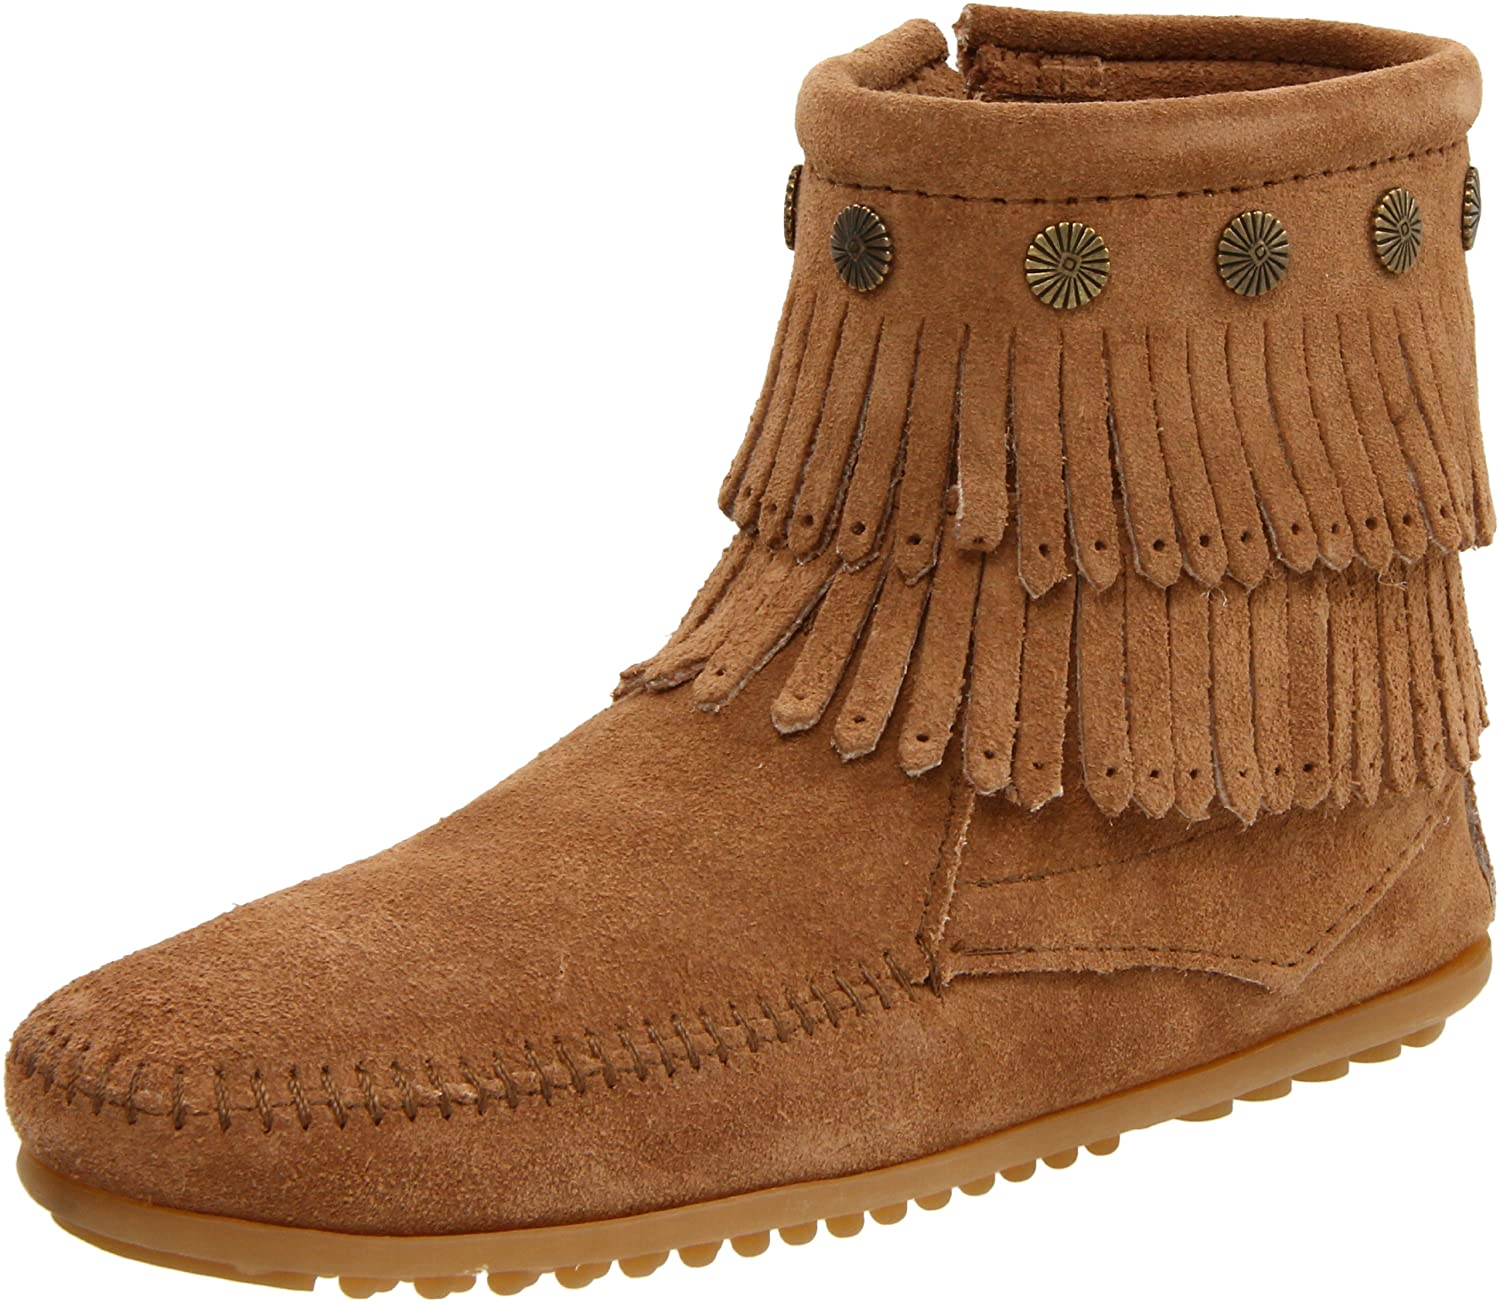 Minnetonka Women's Double-Fringe Side-Zip Boot B004UERF6Y 11 B(M) US|Taupe